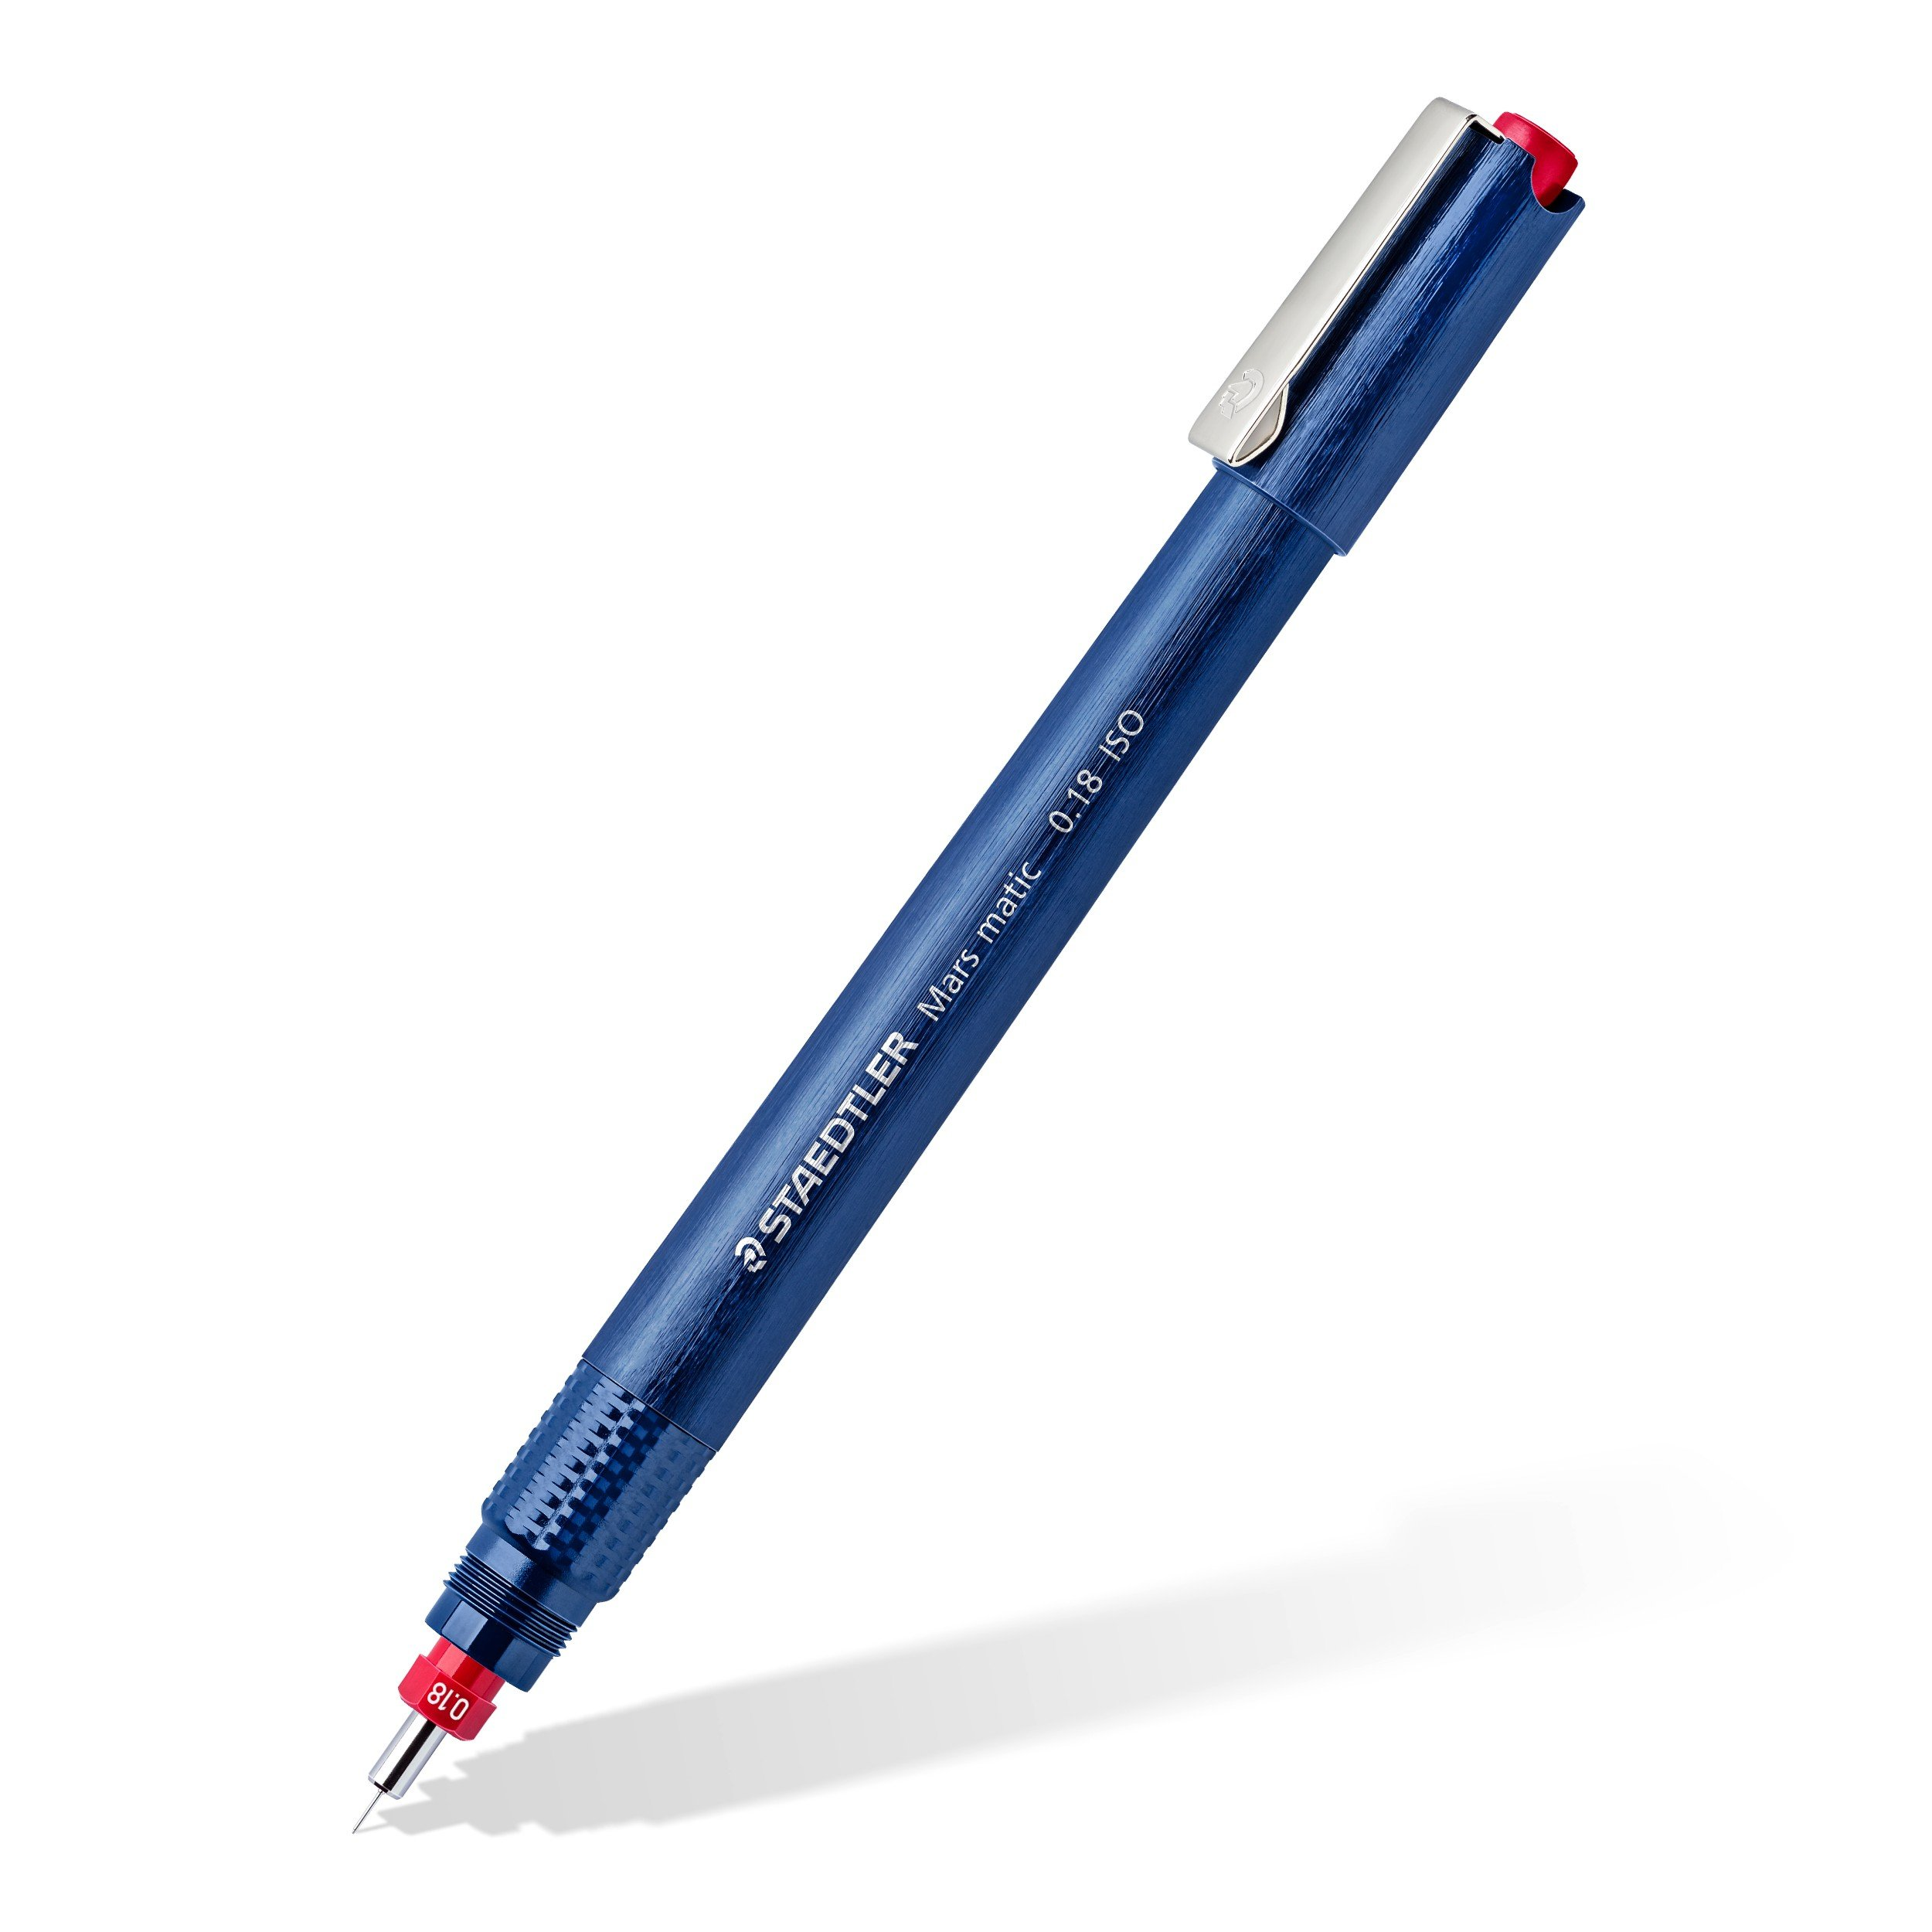 Staedtler Mars Matic 700 M018 Technical Pen - 0.18 mm by STAEDTLER